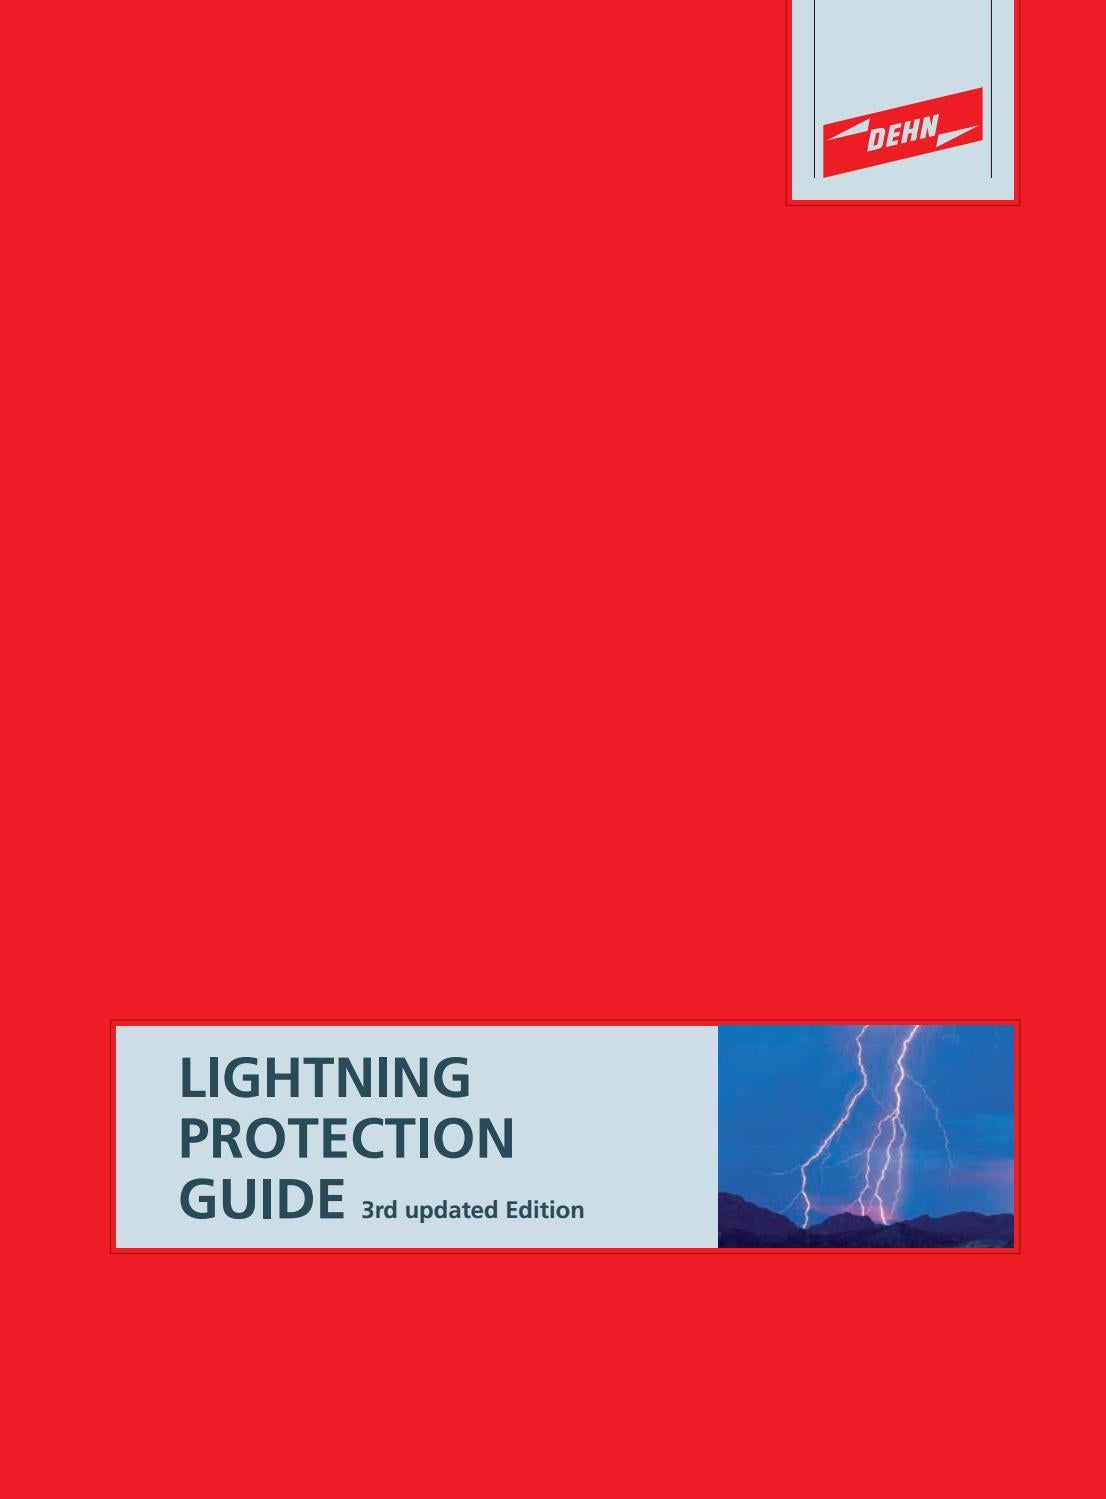 Lightning Protection Guide 2015 By Modiconlv Issuu Snap On Welder Plug Wiring Diagram Further Electric Fence Insulator